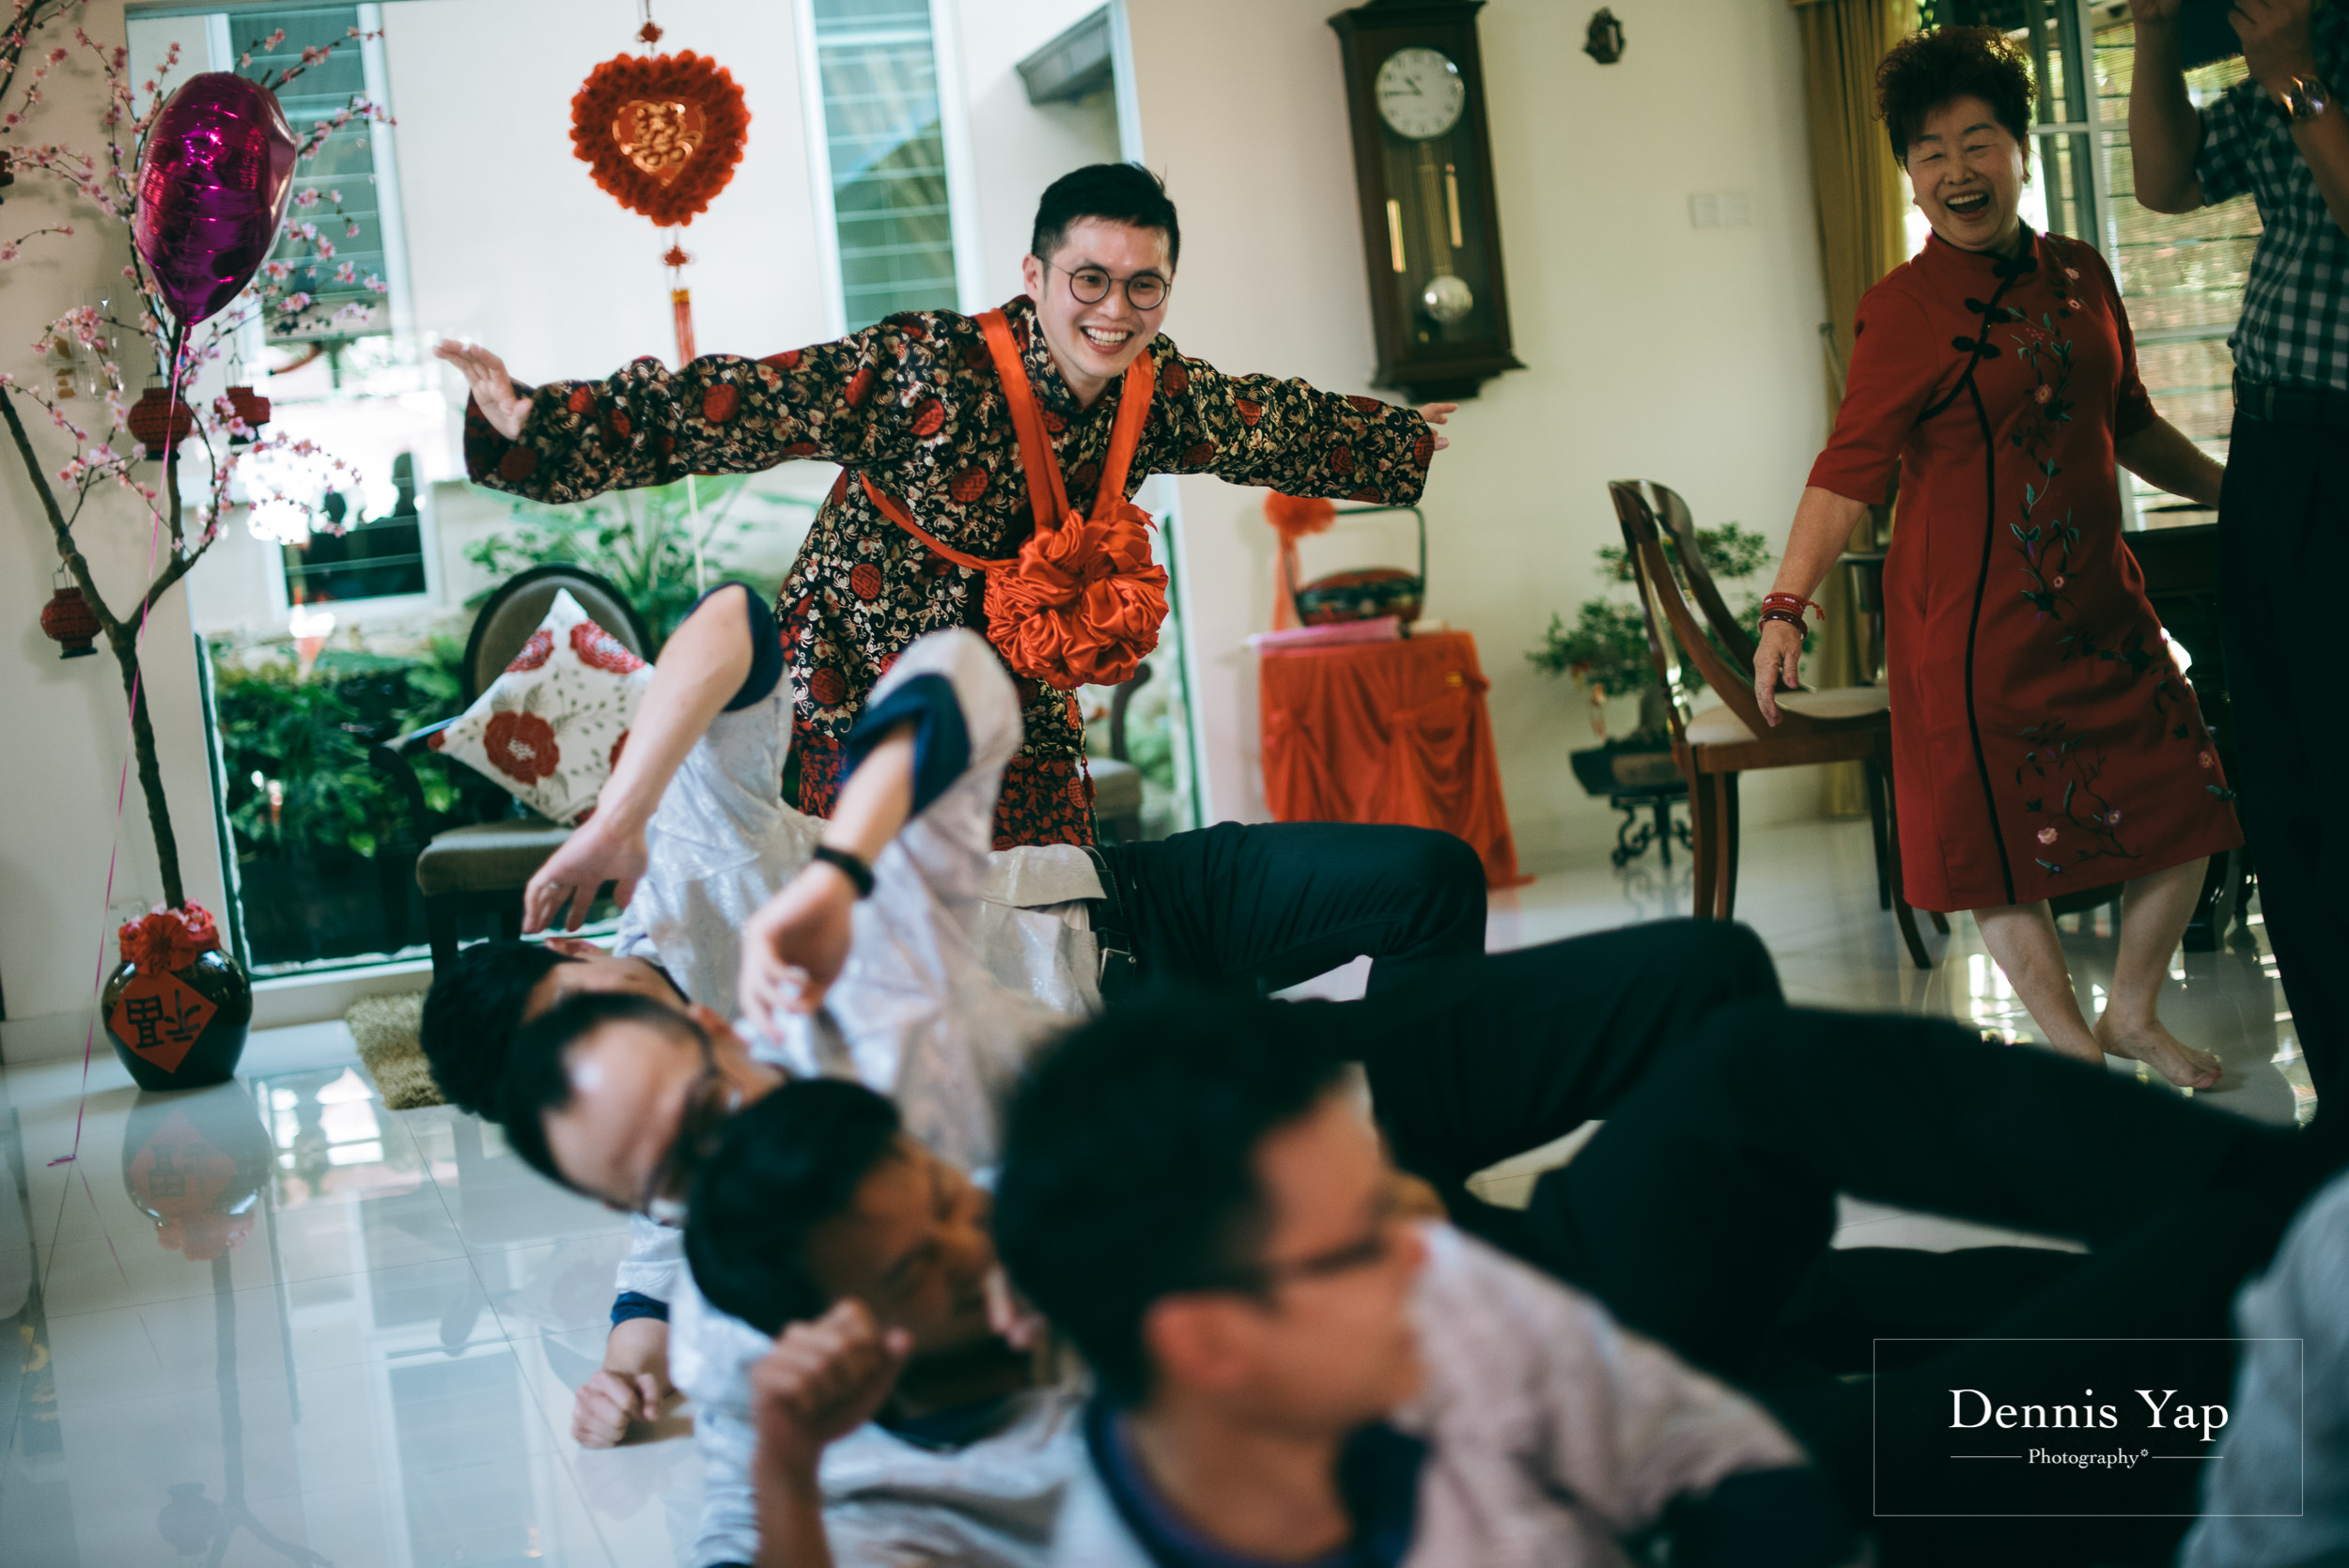 bobby fiona dennis yap photography malaysia wedding photographer chinese traditional-72.jpg